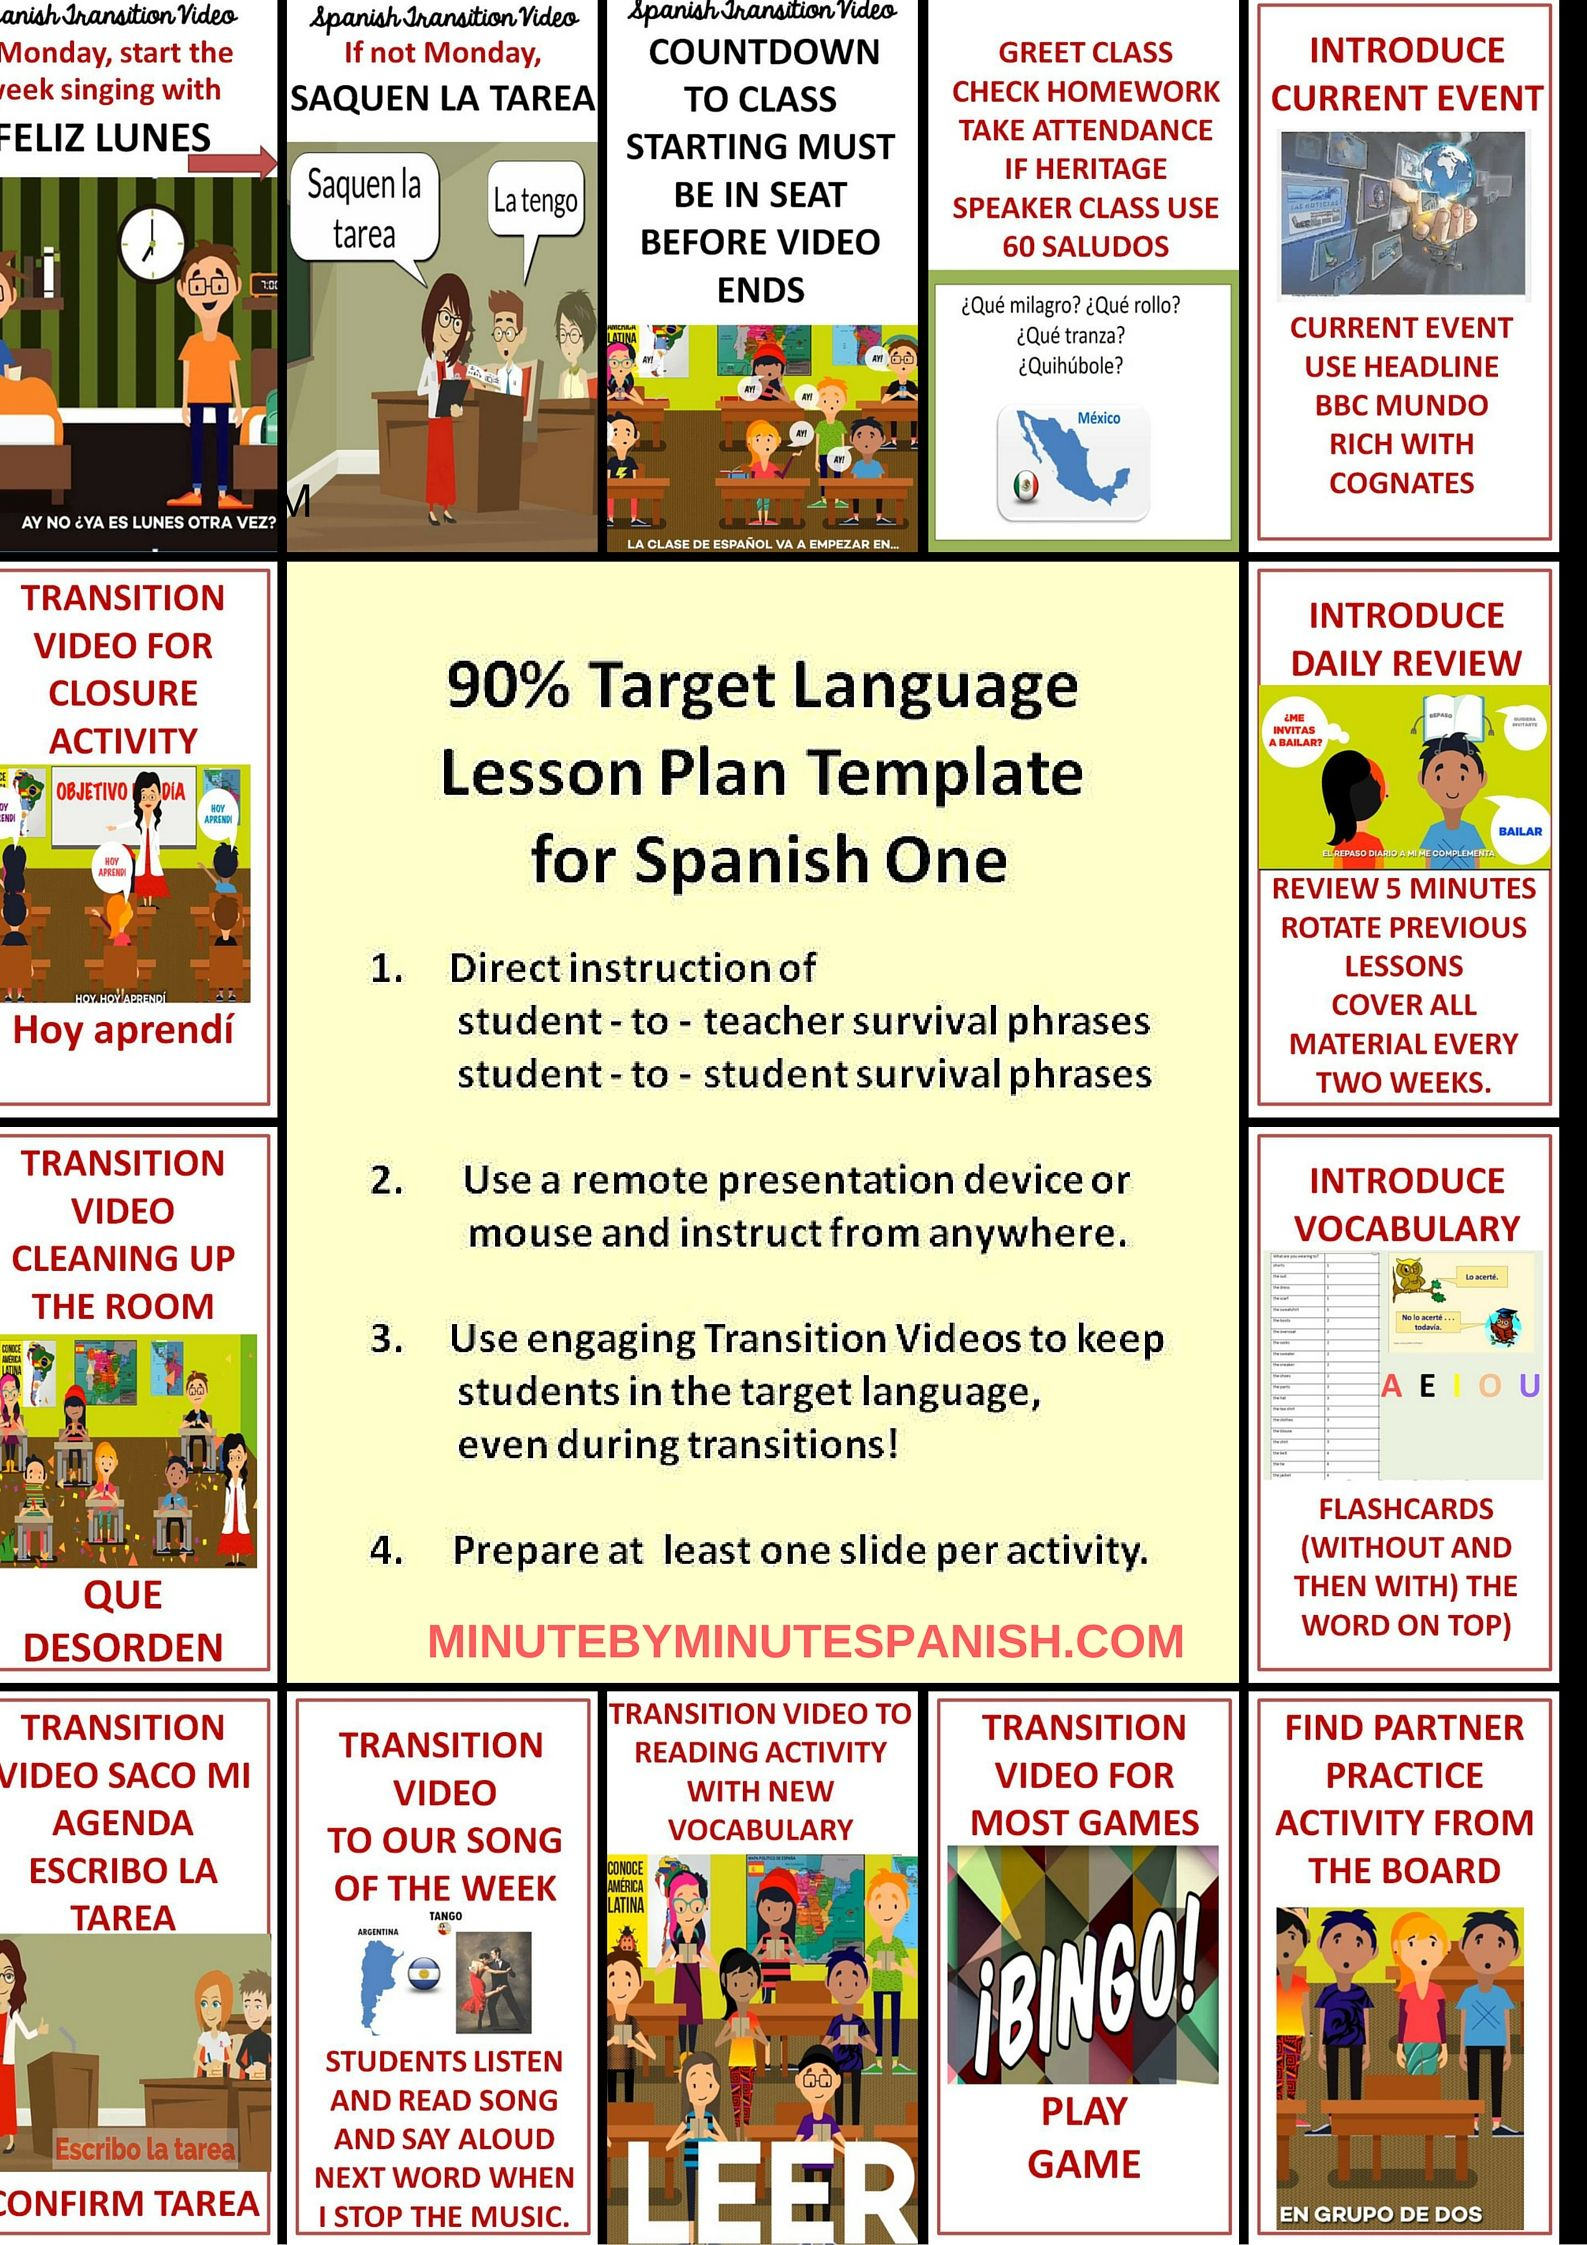 To use 90% Target Language in the Spanish 1 classroom, students must ...